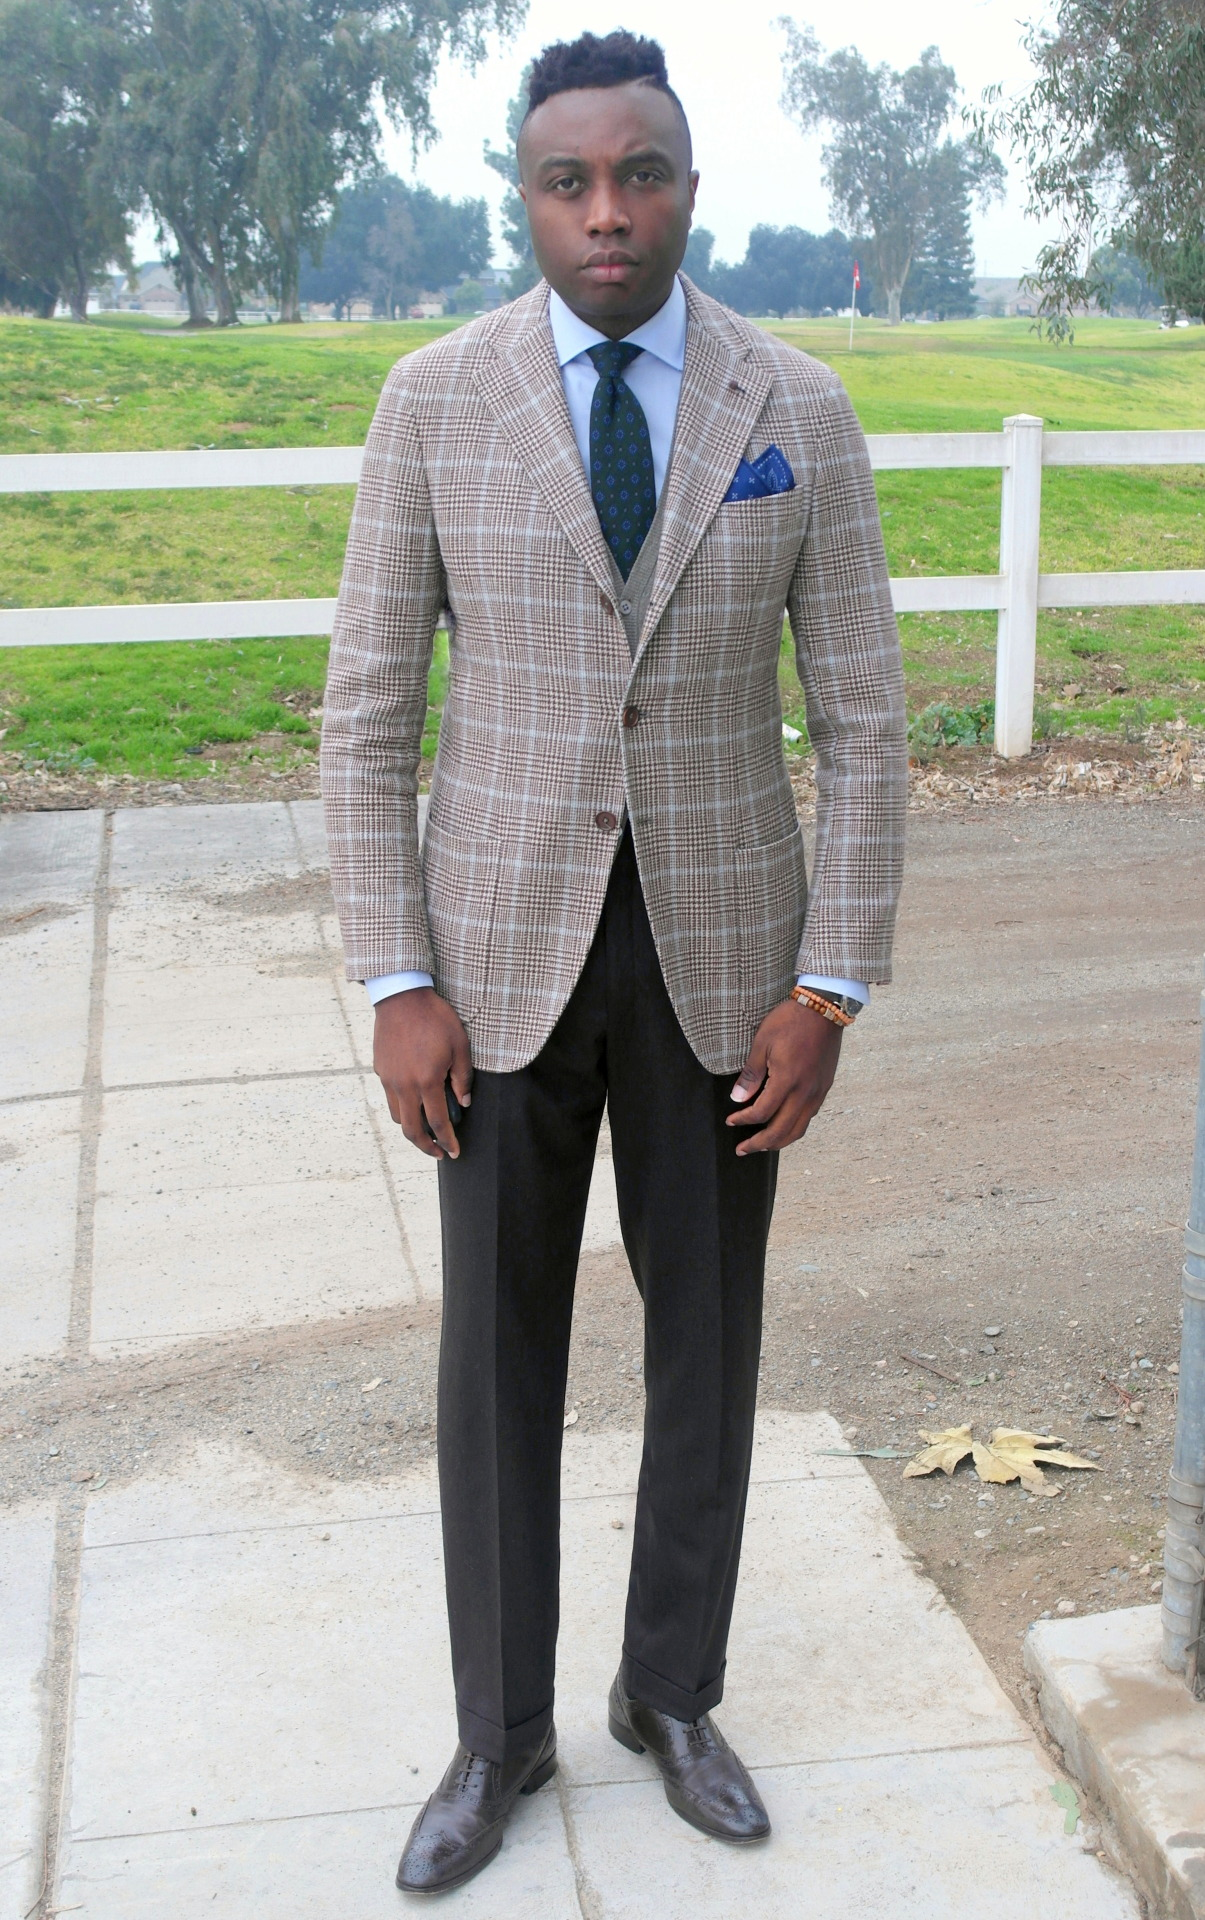 Flannels and wool in this shade of brown, blue and green..BLAZER: isaia(flannel)..SHIRT: eton..TIE: isaia napoli..CARDIGAN: suit supply..PANTS: hickey freeman (flannel)..SHOES: church's..POCKET SQUARE: nordstroms.. #isaia#Suit Supply#hickeyfreemen#nordstromstyle#churchs#Eton#suit#Suitup#bespoke#custom#fashion#menswear#menstyle#mensfashion#designer#GQ#GQstyle#GQmen#instafashion#instalike#instagood#ootdfashion#ptoman#style#WIWT#styleinspiration#styleinspo#Lookbook#lookoftheday#ootdmen